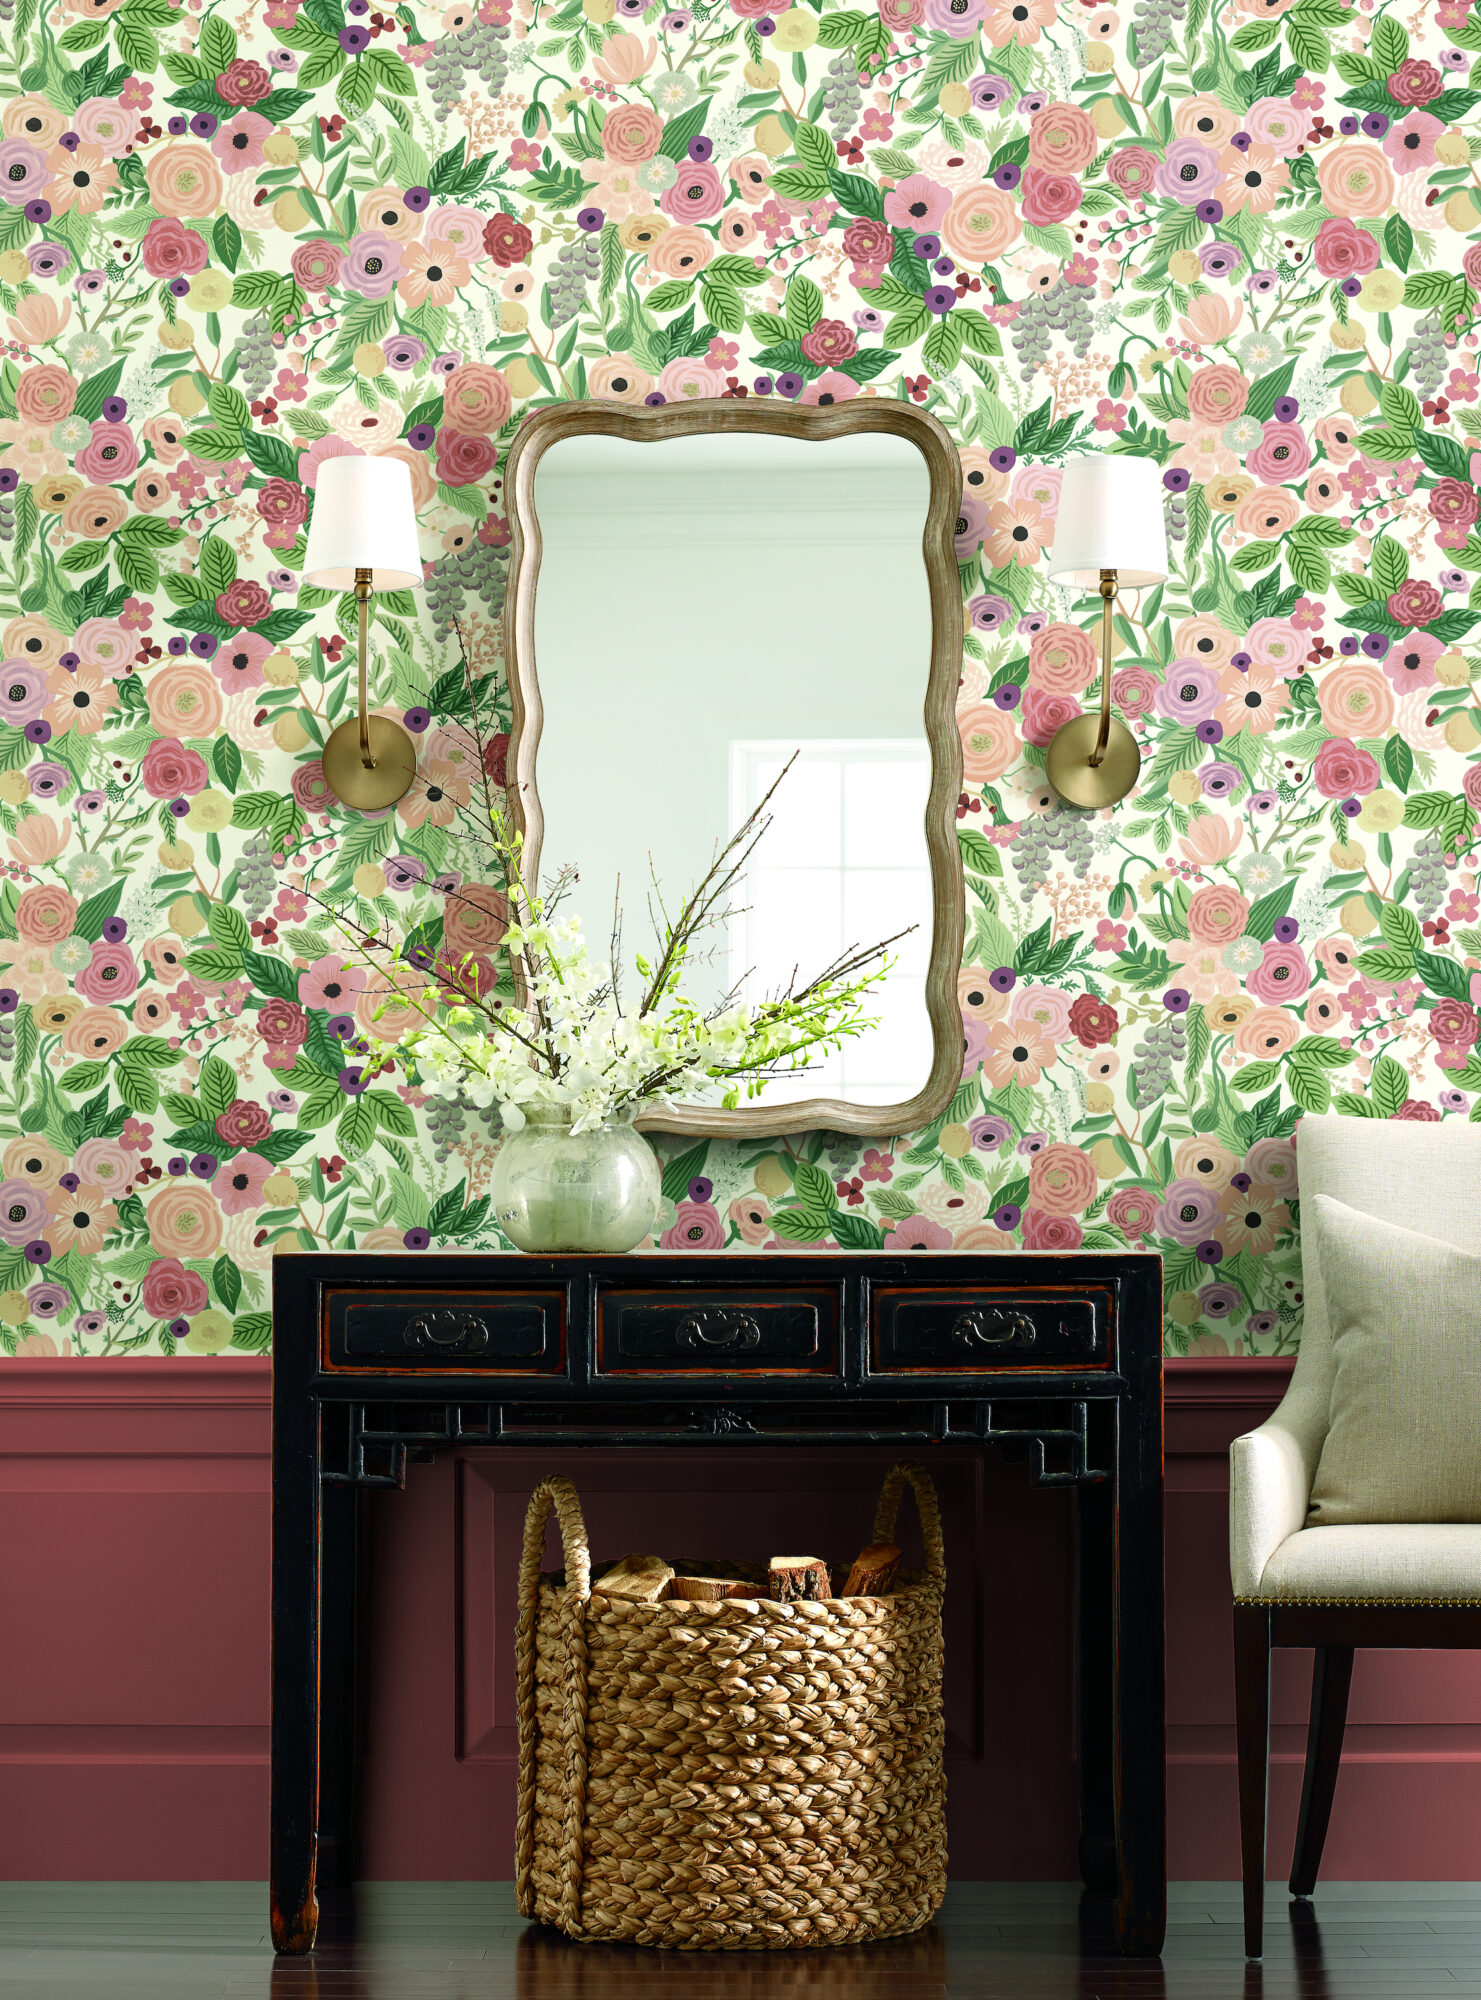 flower wallpaper basket of wood mirror